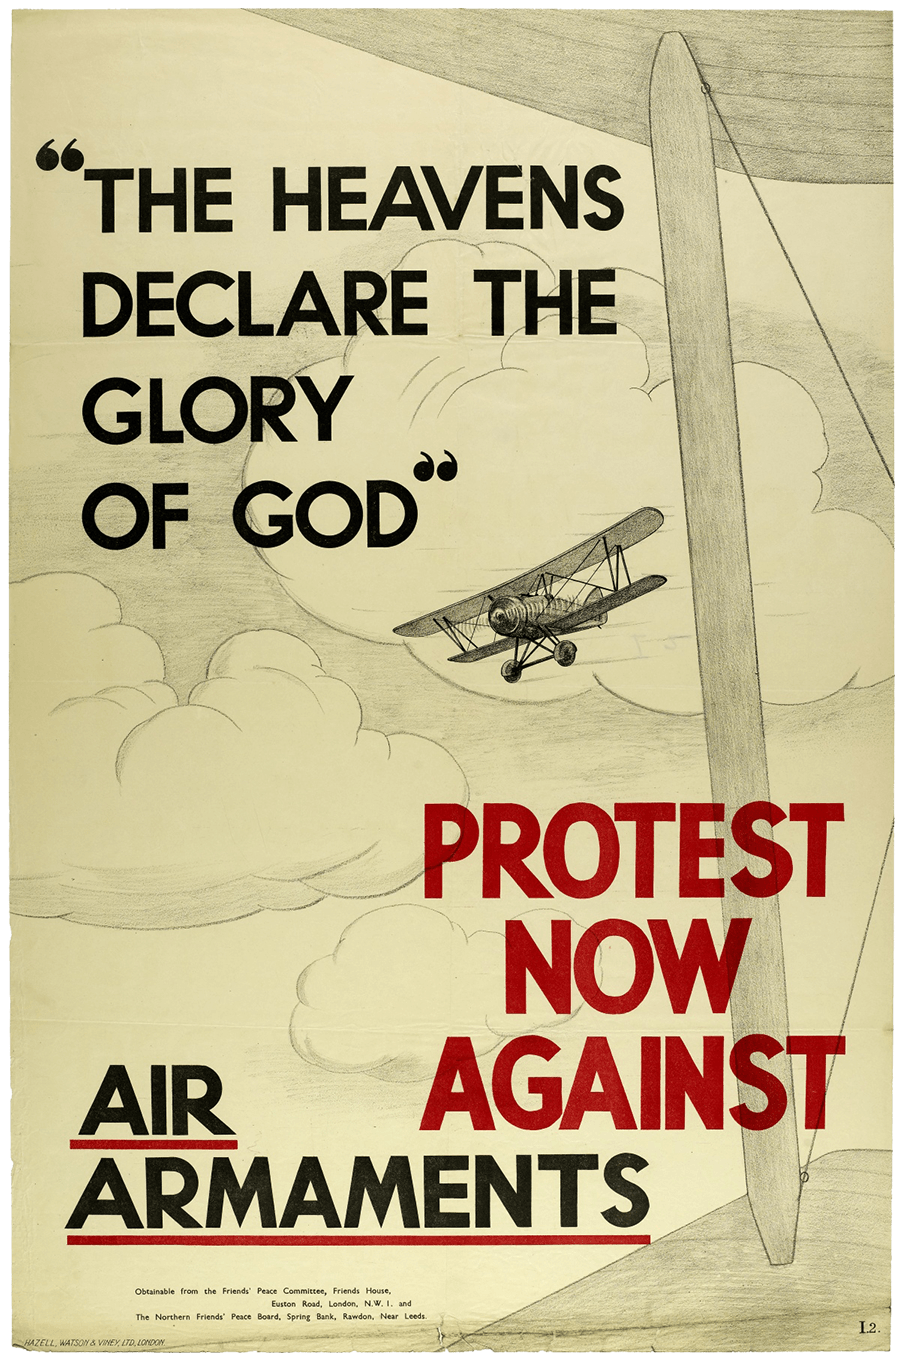 A British poster from the Second World War encouraging people to protest against the use of bombs.